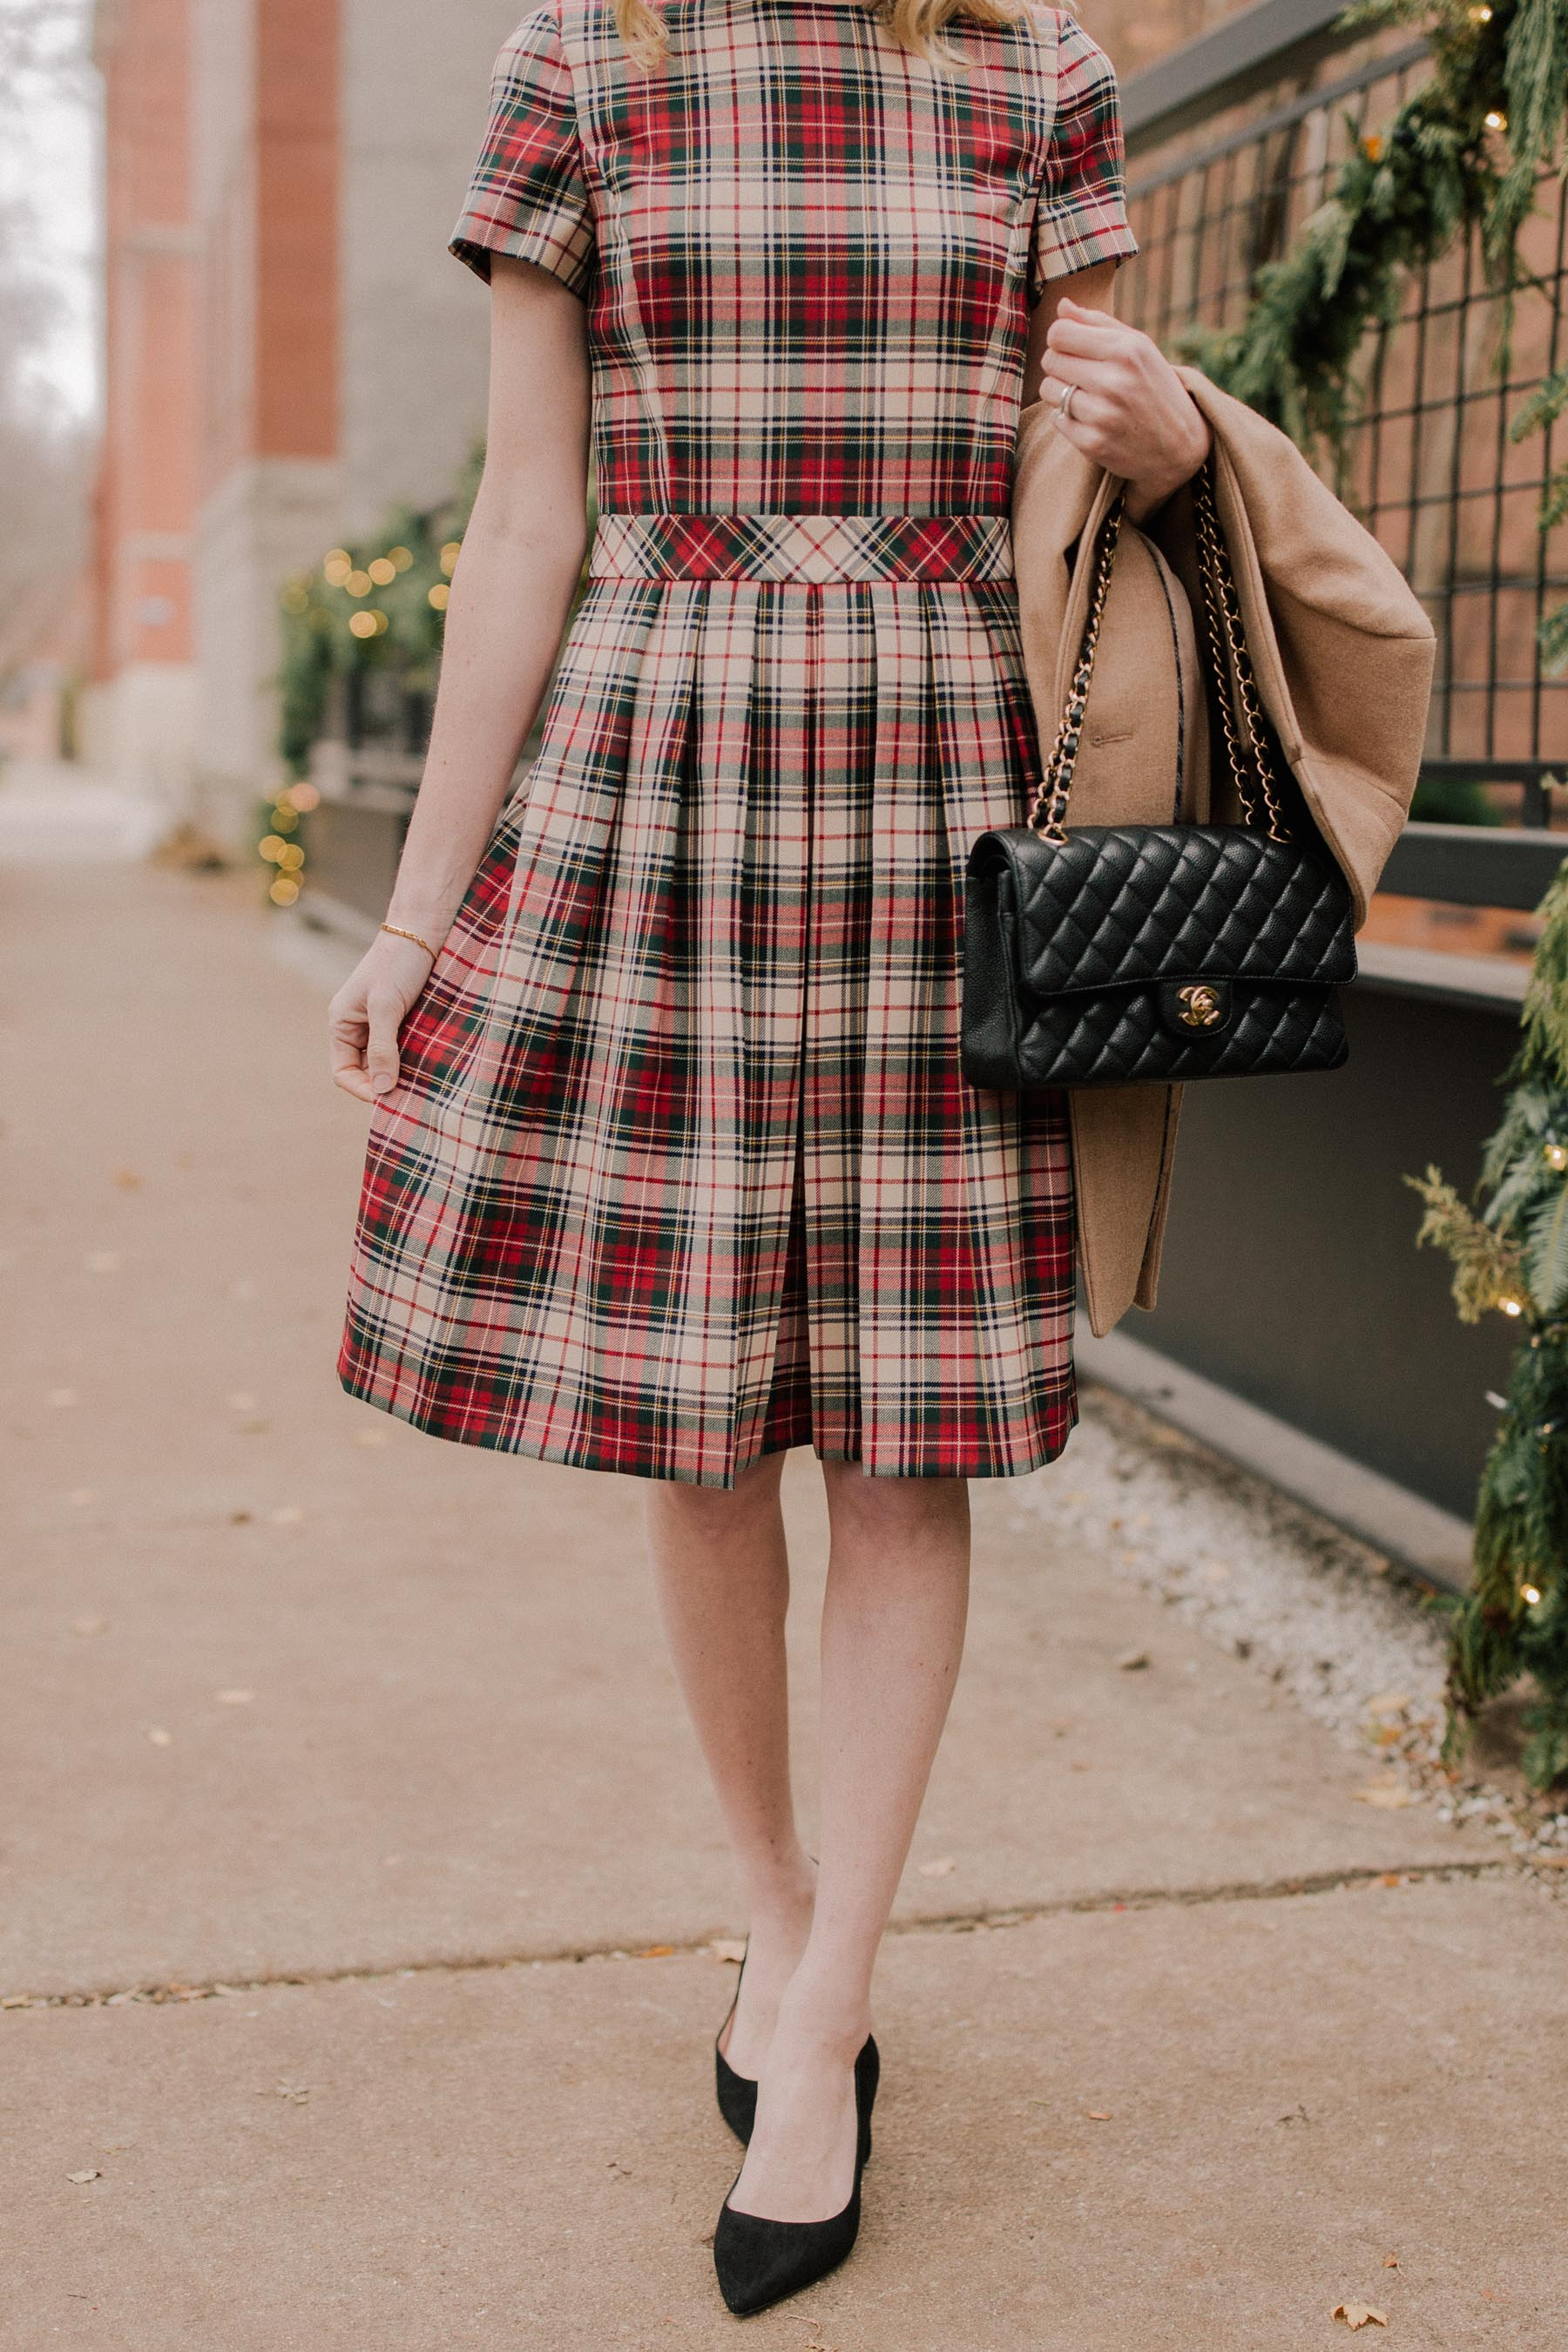 The Best Stewart Plaid Clothing Kelly In The City